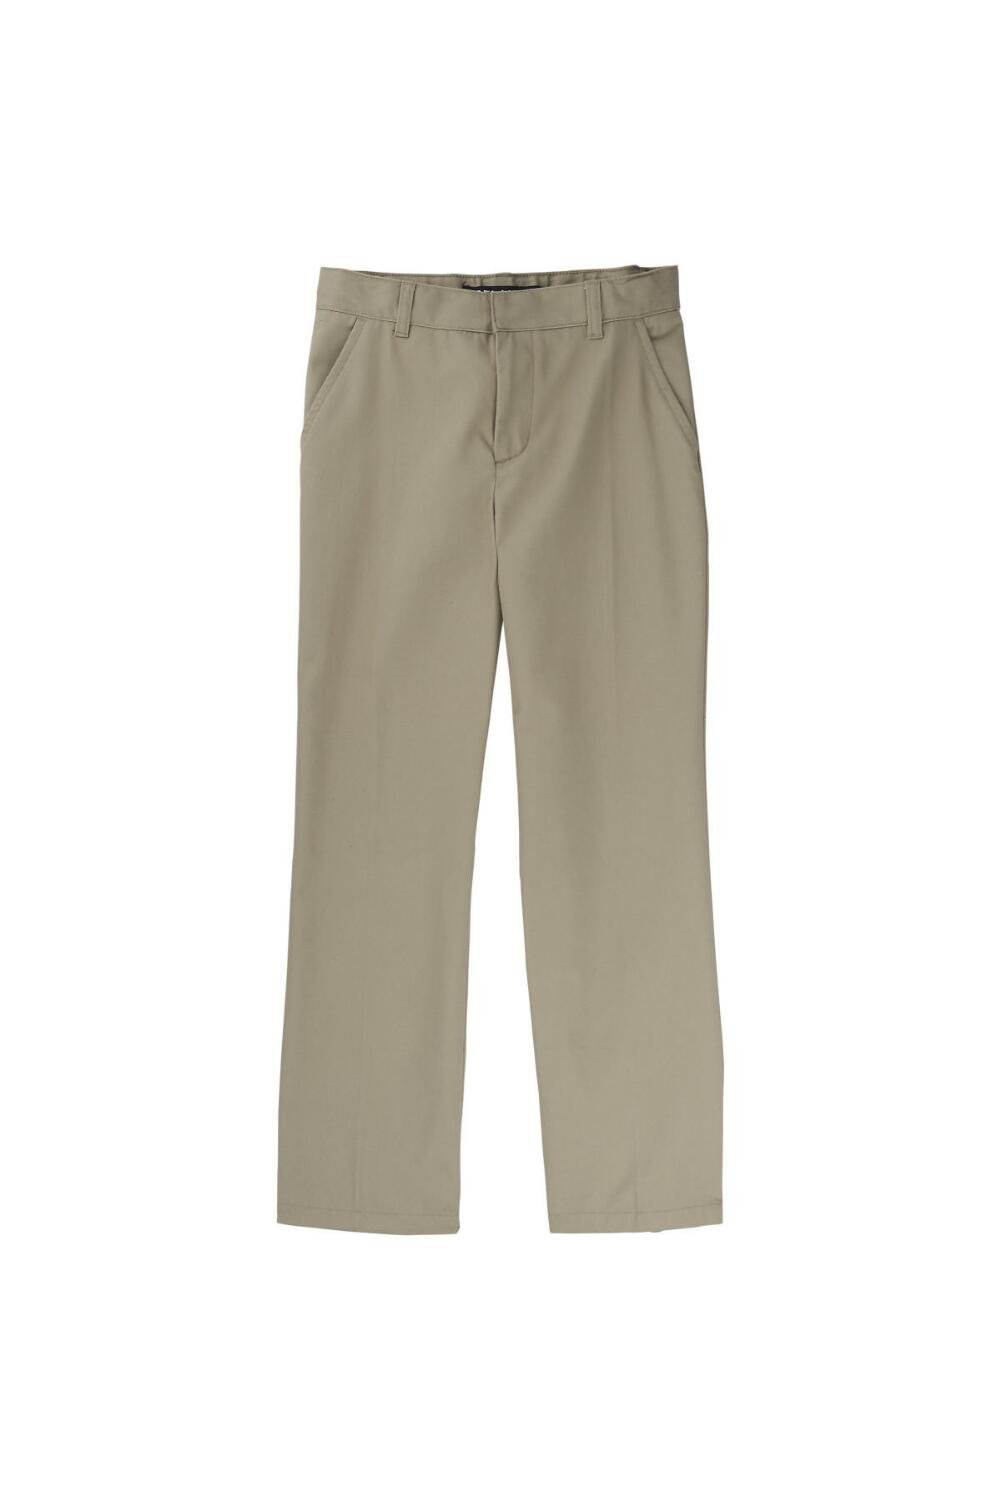 French Toast Big Boys' Flat Front Double Knee Pant with Adjacent Waist and Hem, Khaki, 12